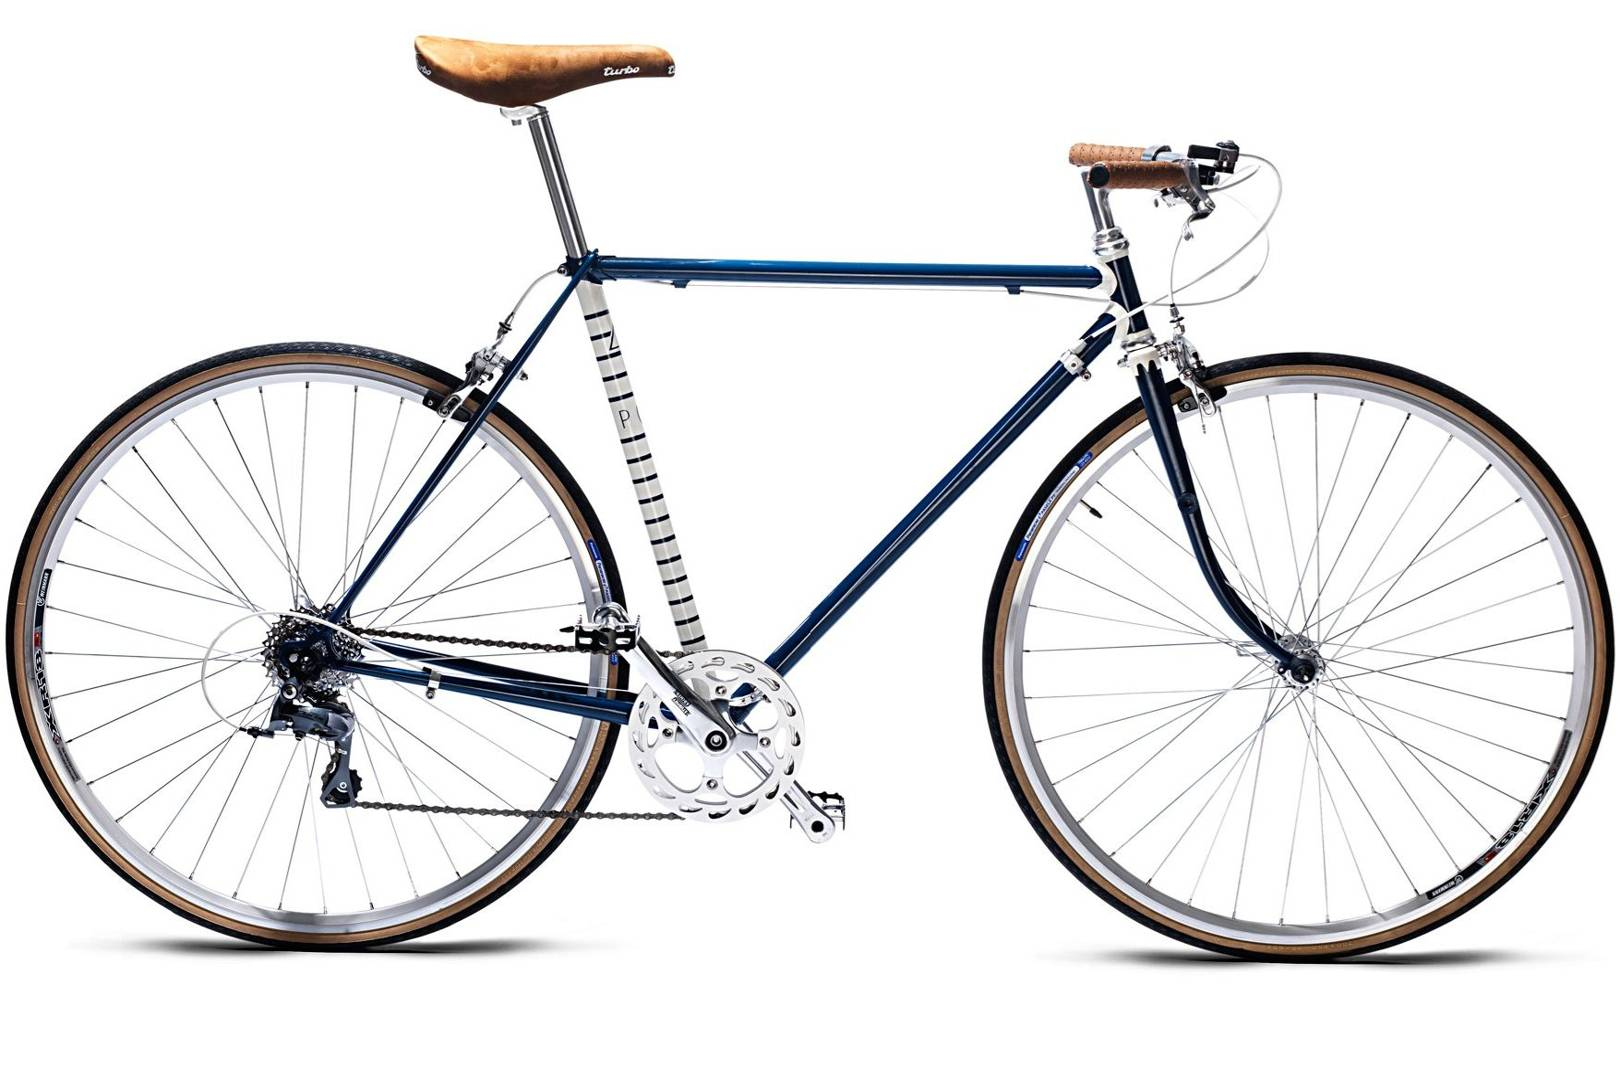 How to build a beautiful classic bicycle | British GQ